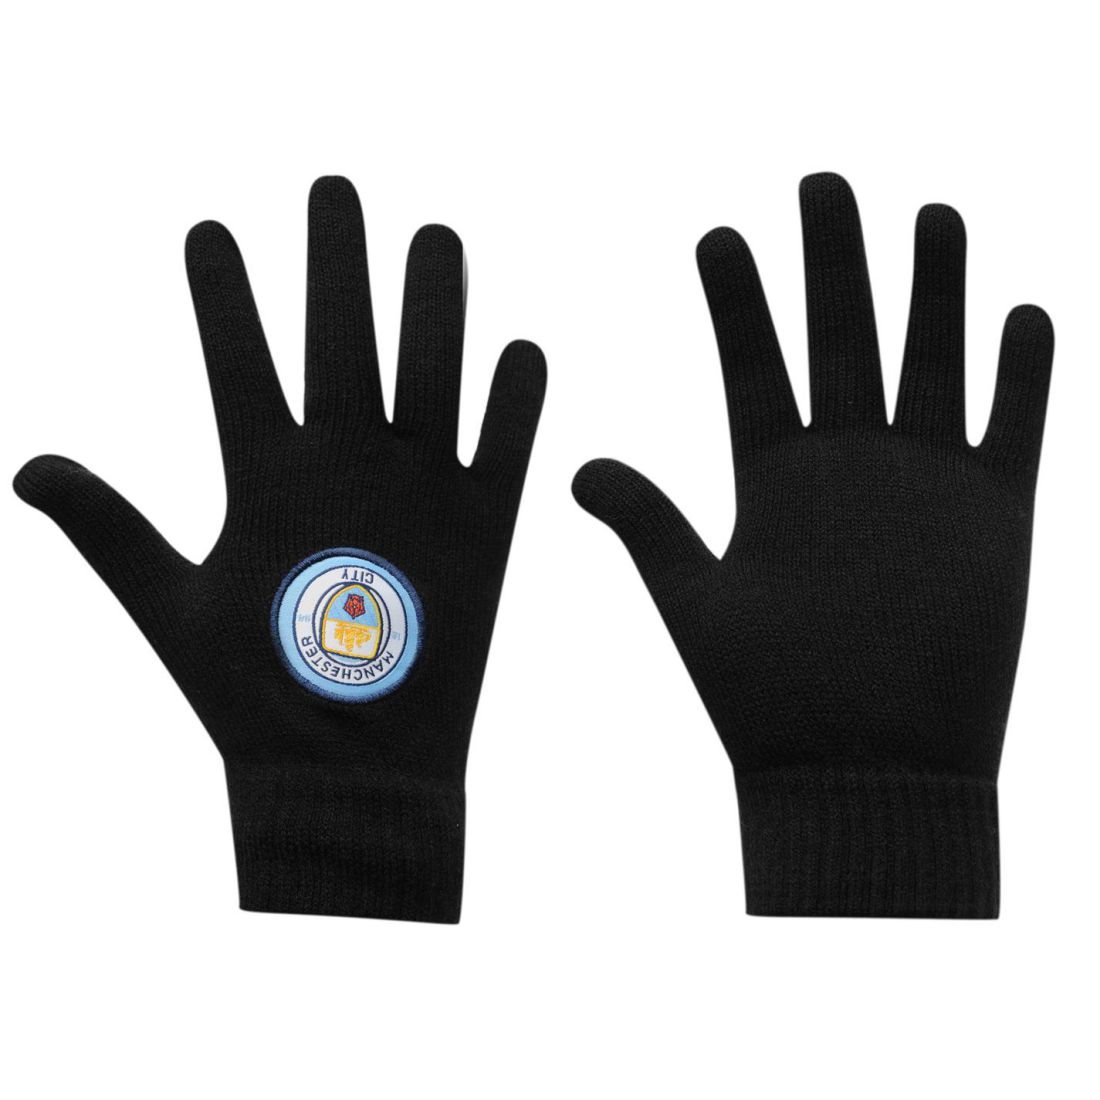 Team Knit Glove Youngster Childrens Knitwear Gloves